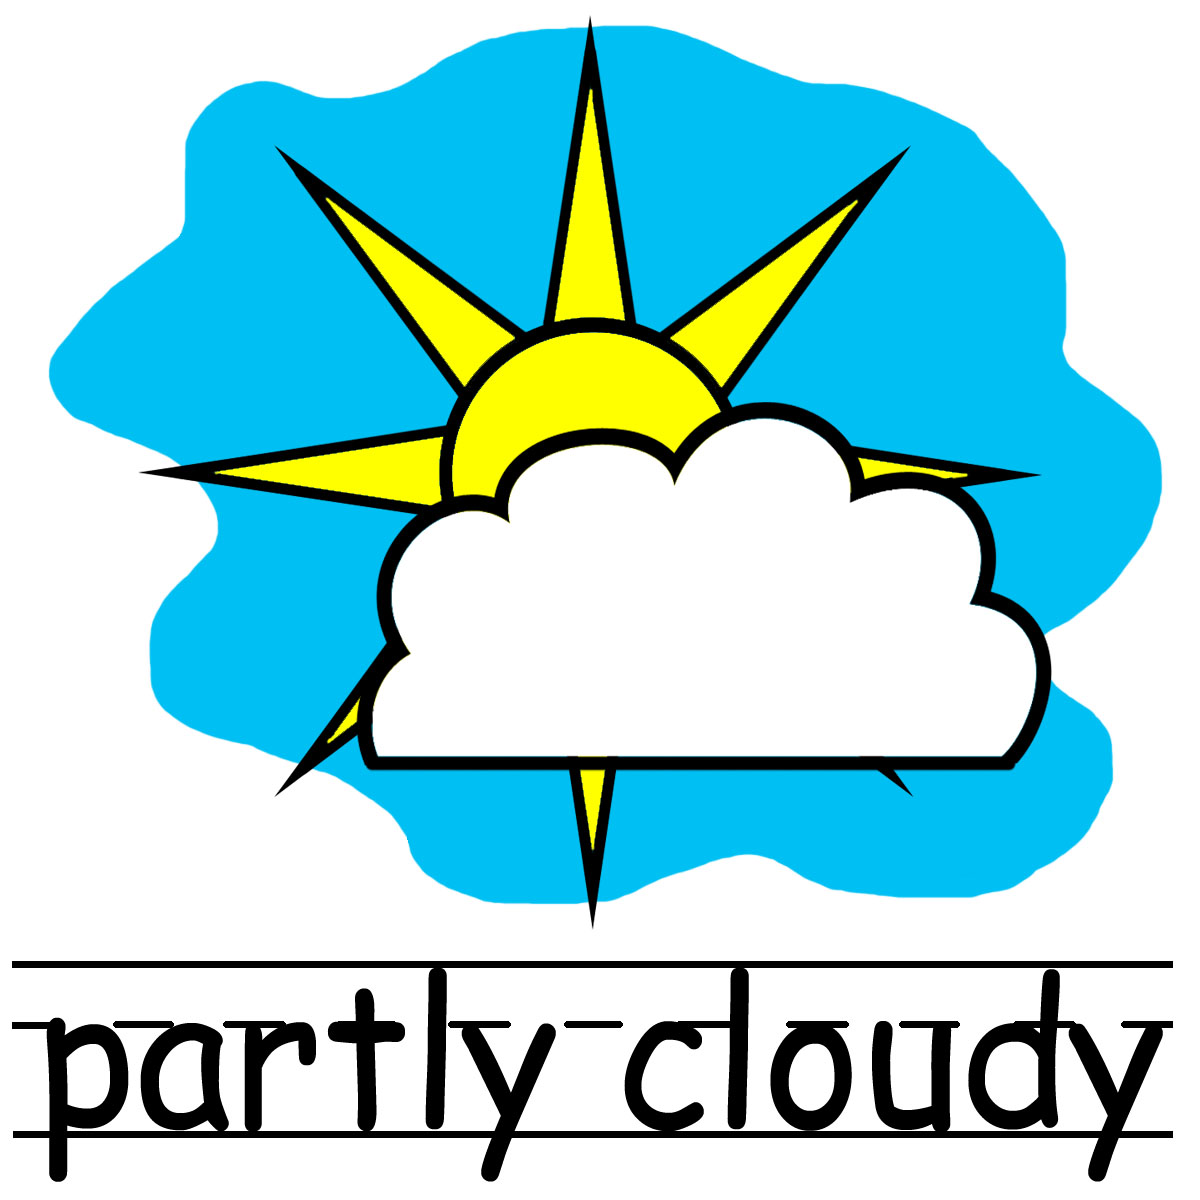 Cold Weather Clip Art N8 free image.